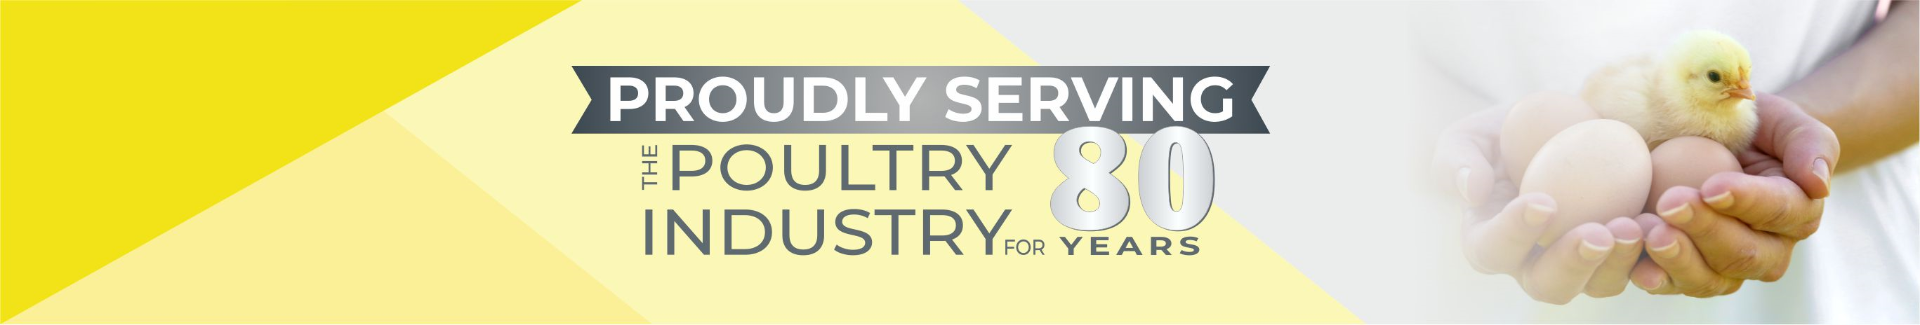 Proudly serving the poultry industry for 80 years